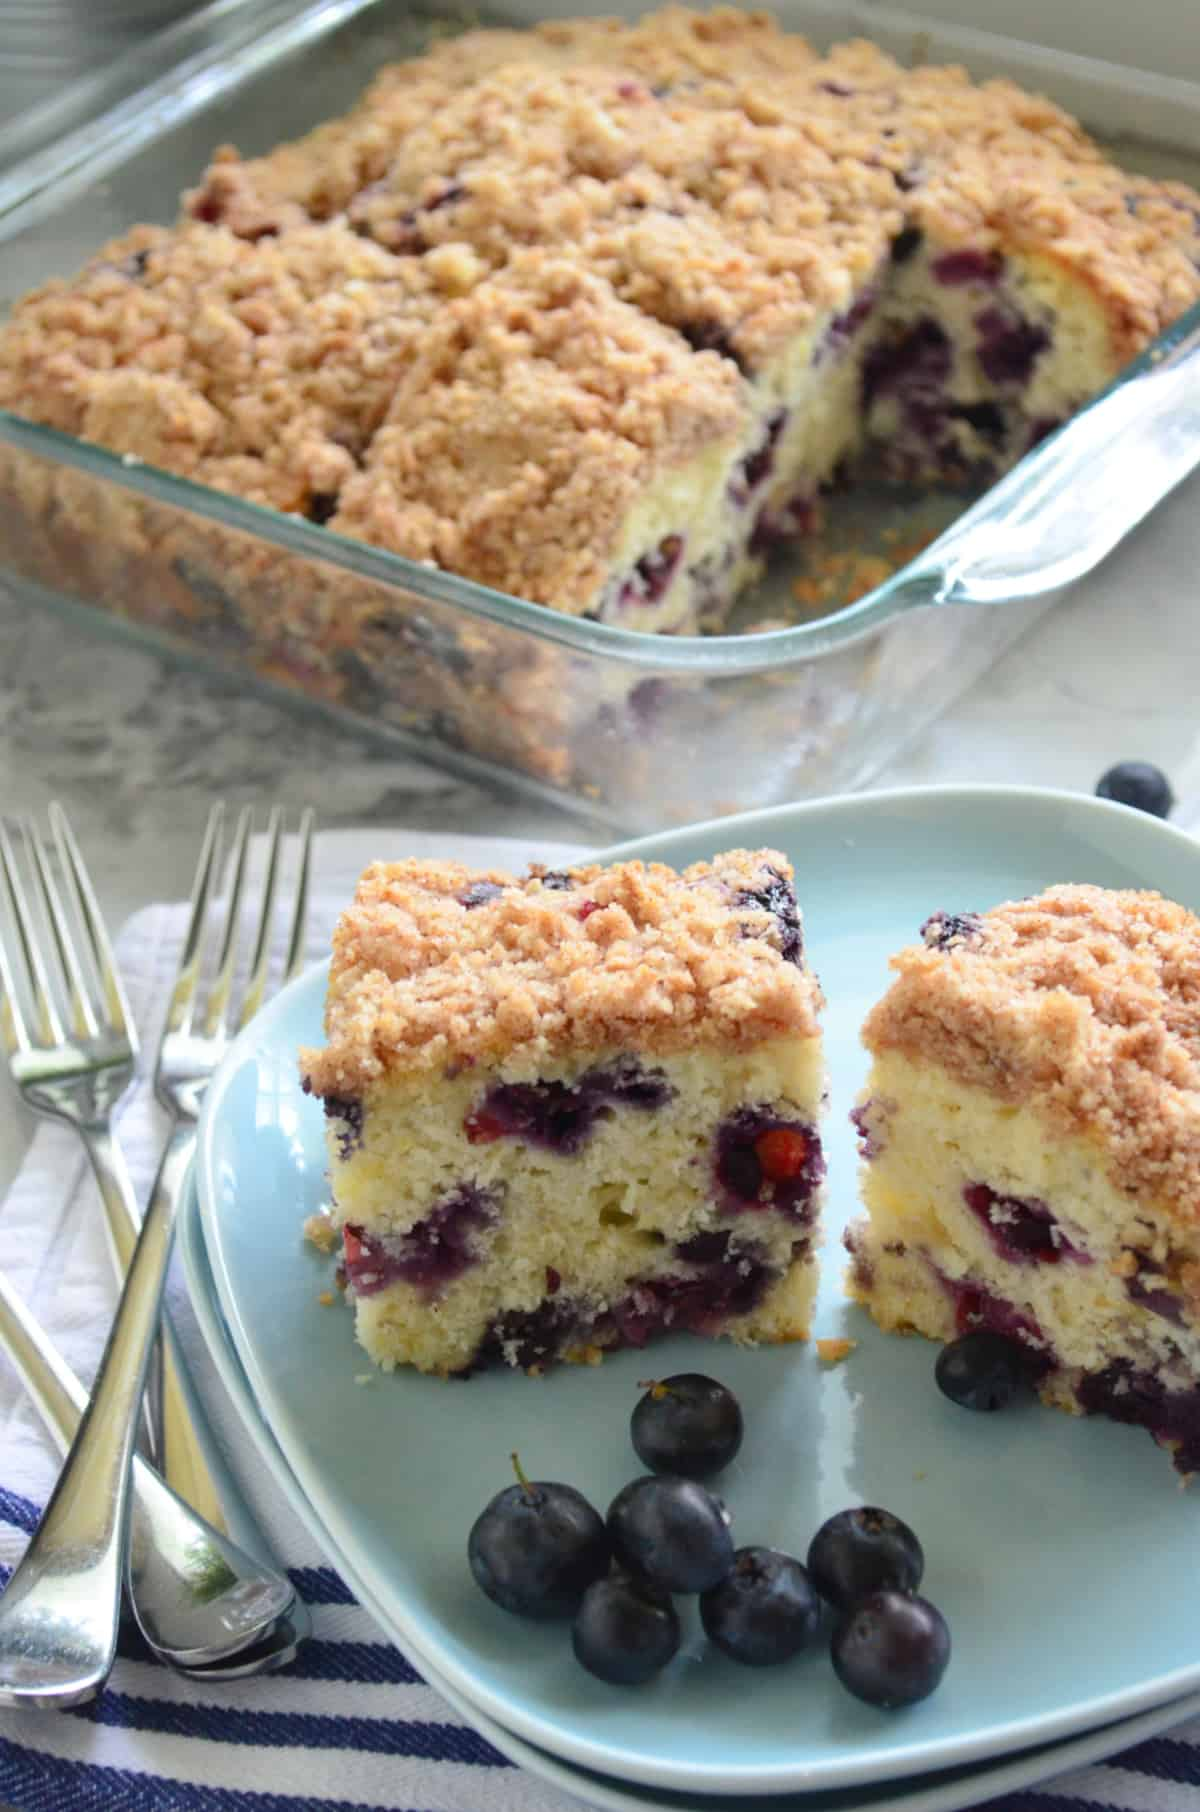 Two slices of Blueberry Coffee Cake with fresh bleuberries on a blue square plate with forks on the side.